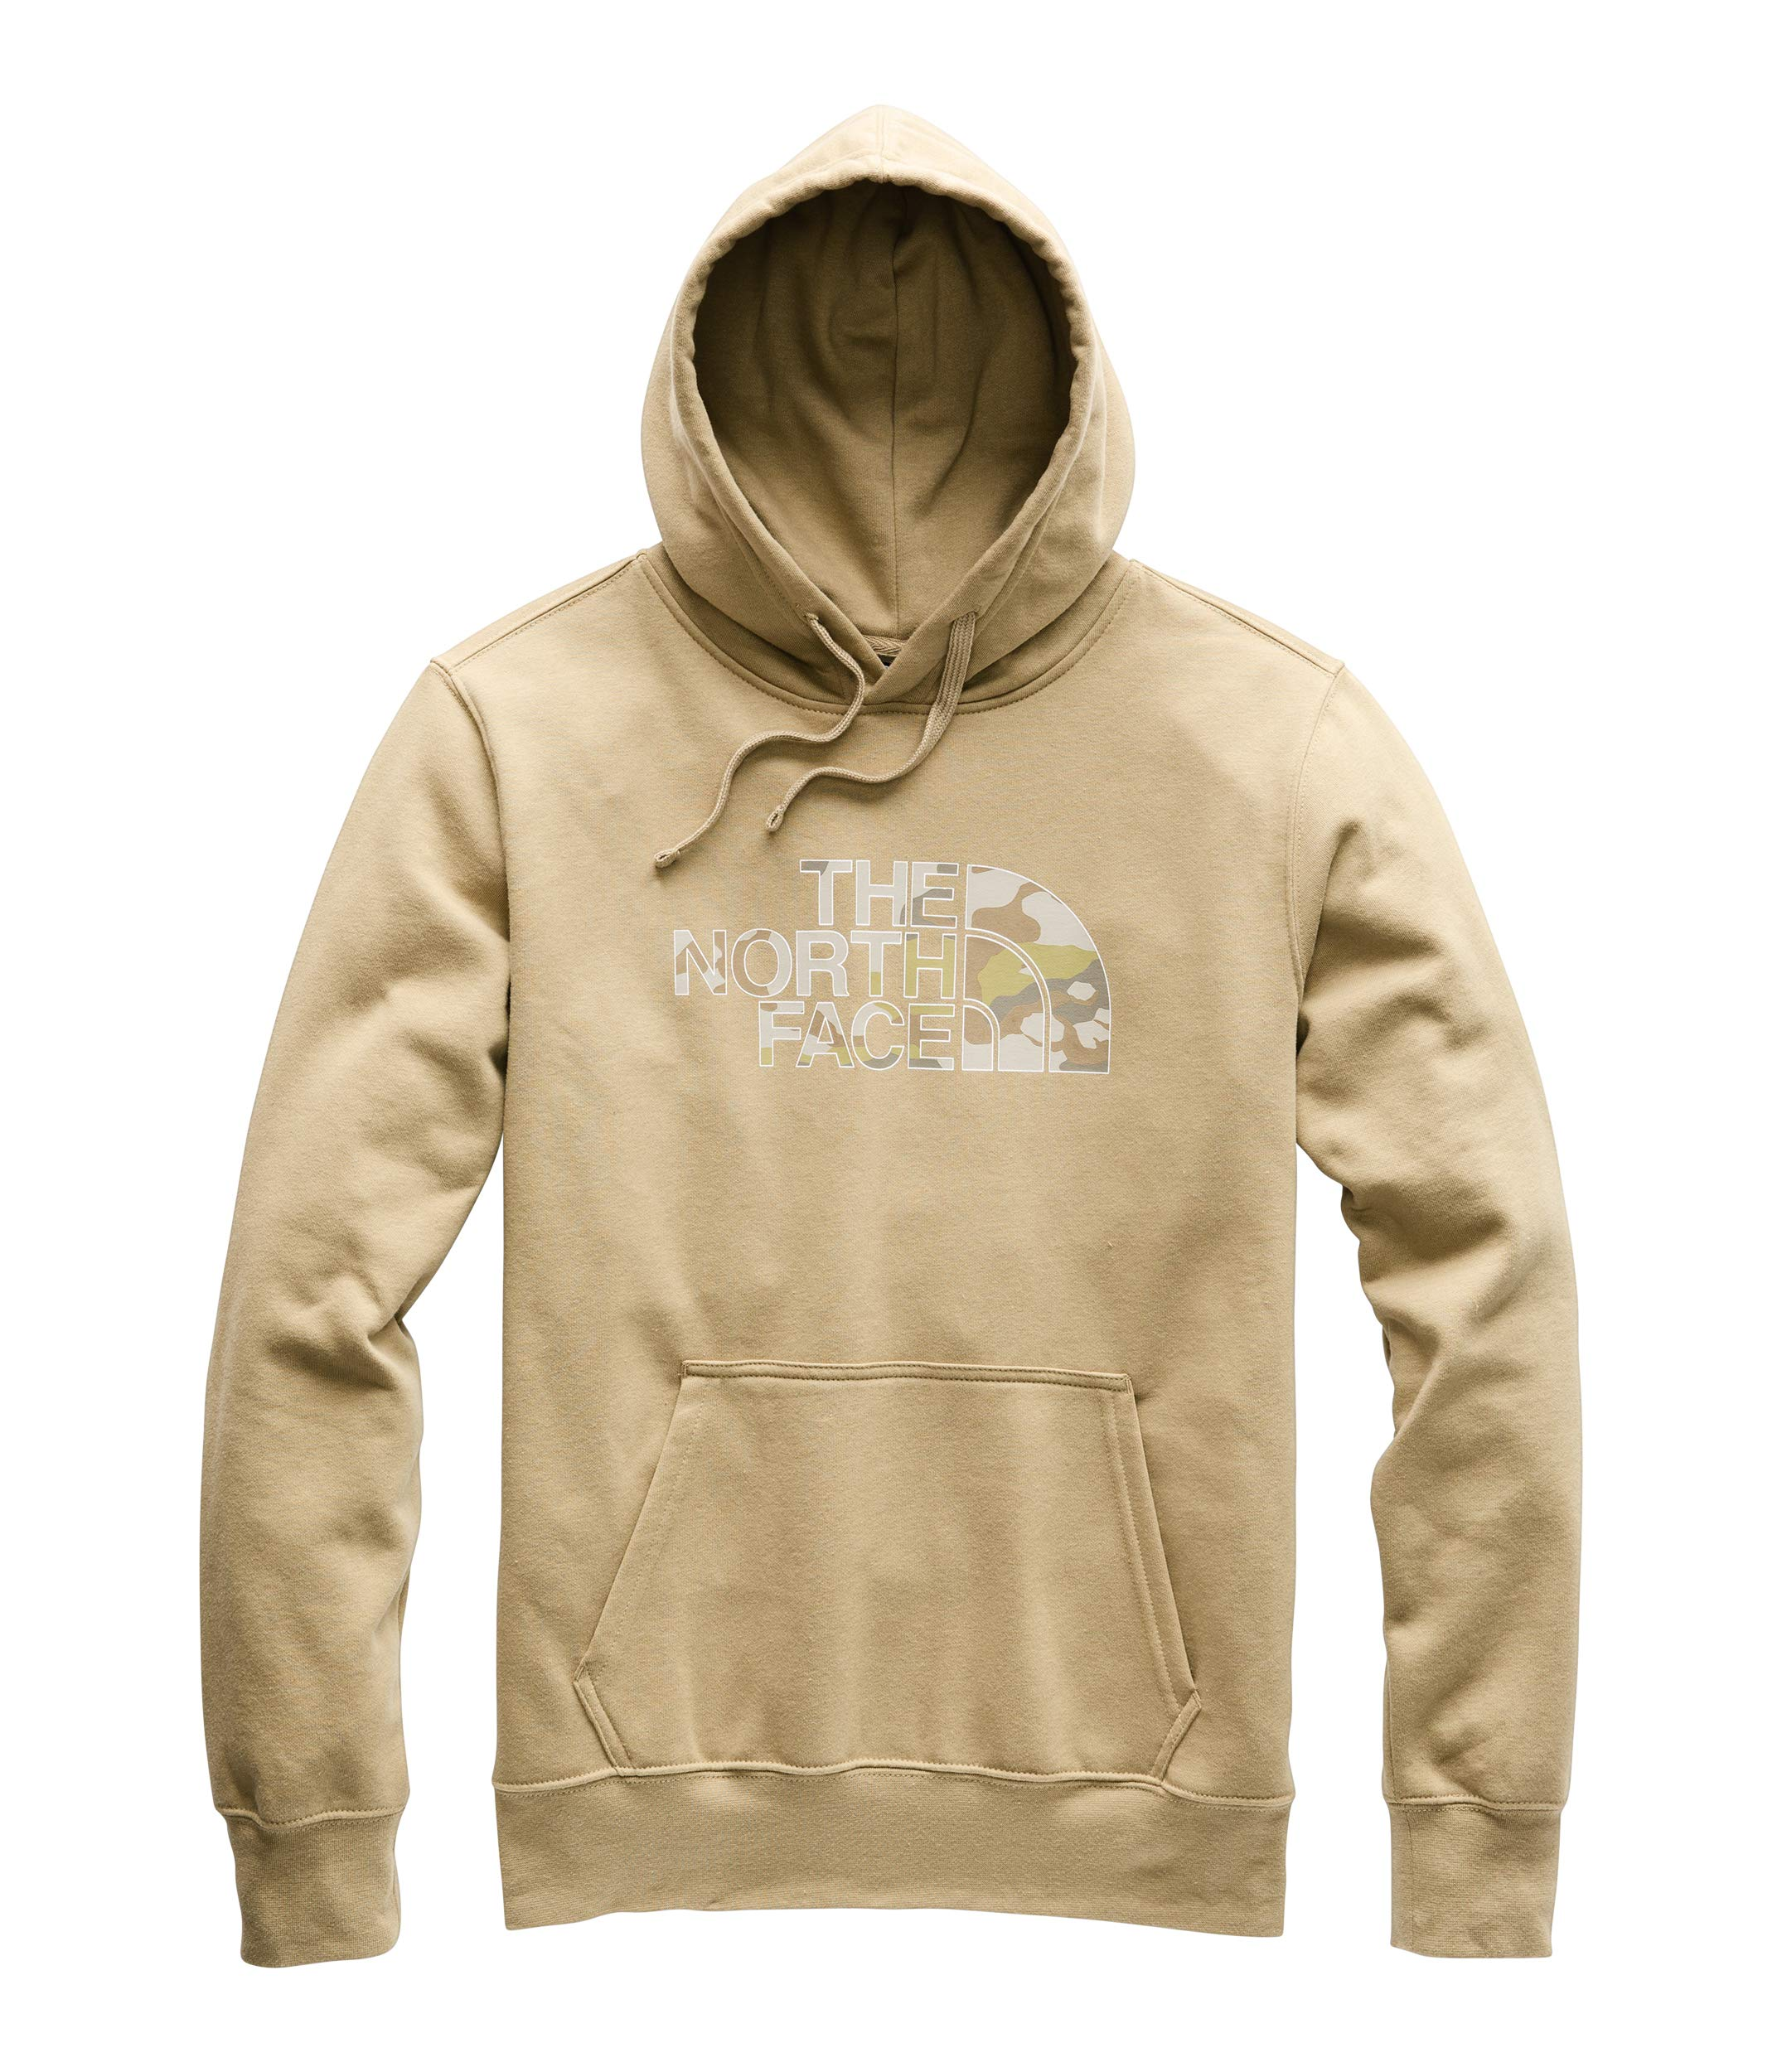 The North Face Men's Half Dome Pullover Hoodie Kelp Tan/Moab Khaki/Woodchip Camo Desert Print Small